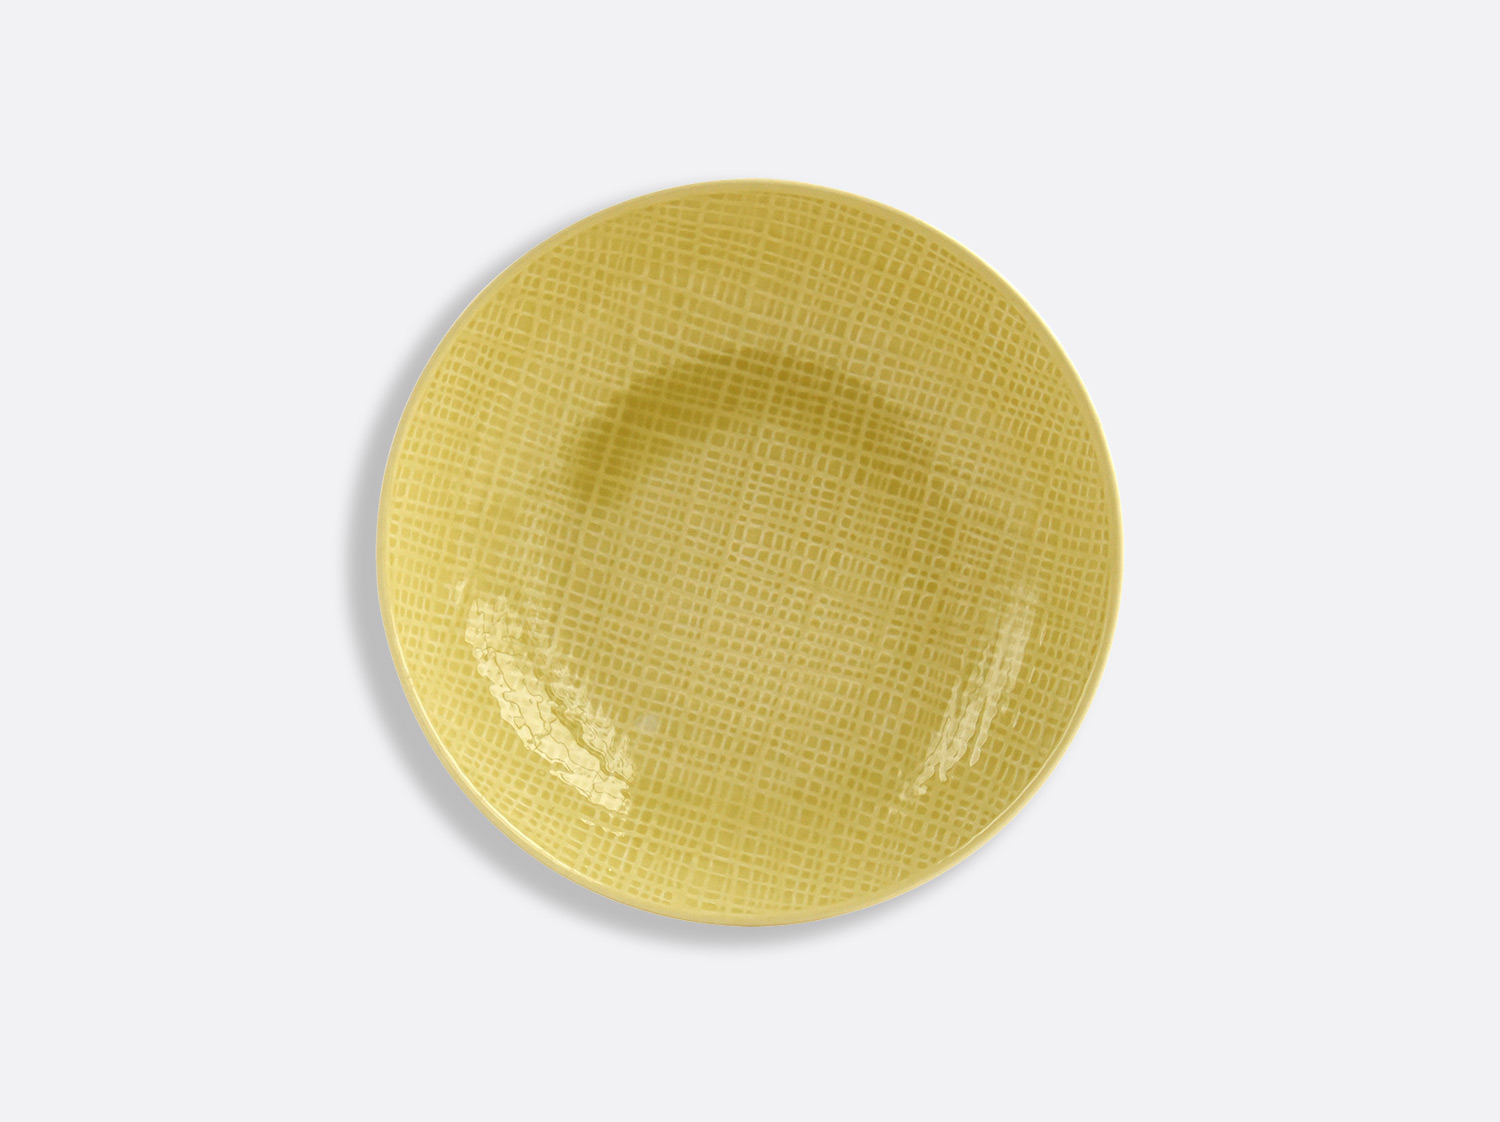 China Yellow coupe soup 19 cm of the collection ORGANZA JAUNE PAILLE | Bernardaud